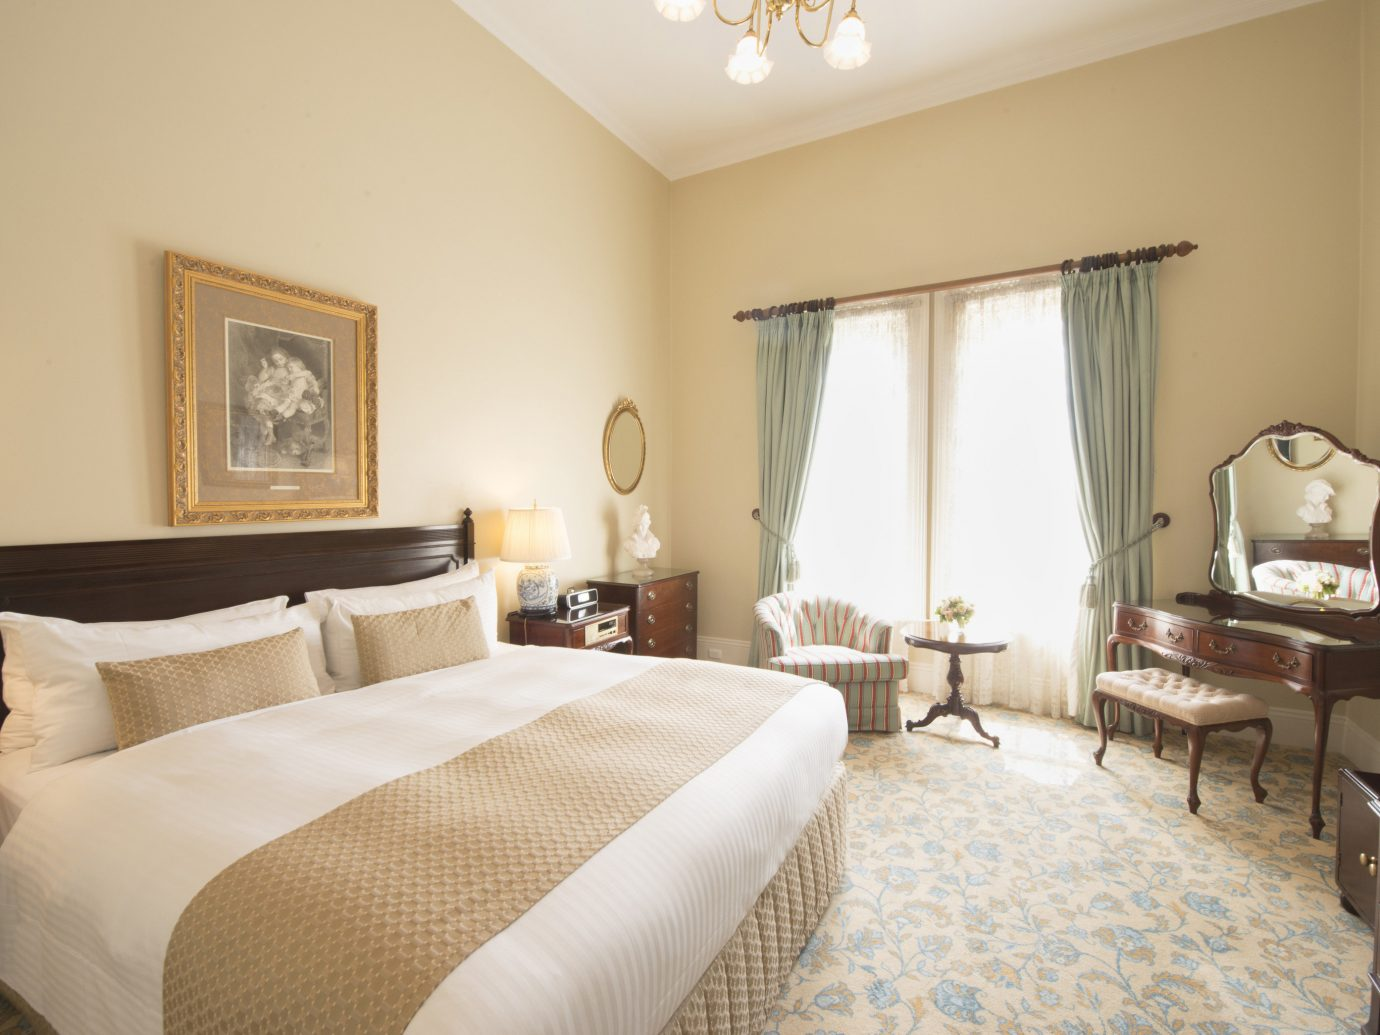 Australia Hotels Melbourne indoor bed wall hotel room floor Bedroom property Suite interior design real estate ceiling estate bed frame window furniture double comfort decorated containing several